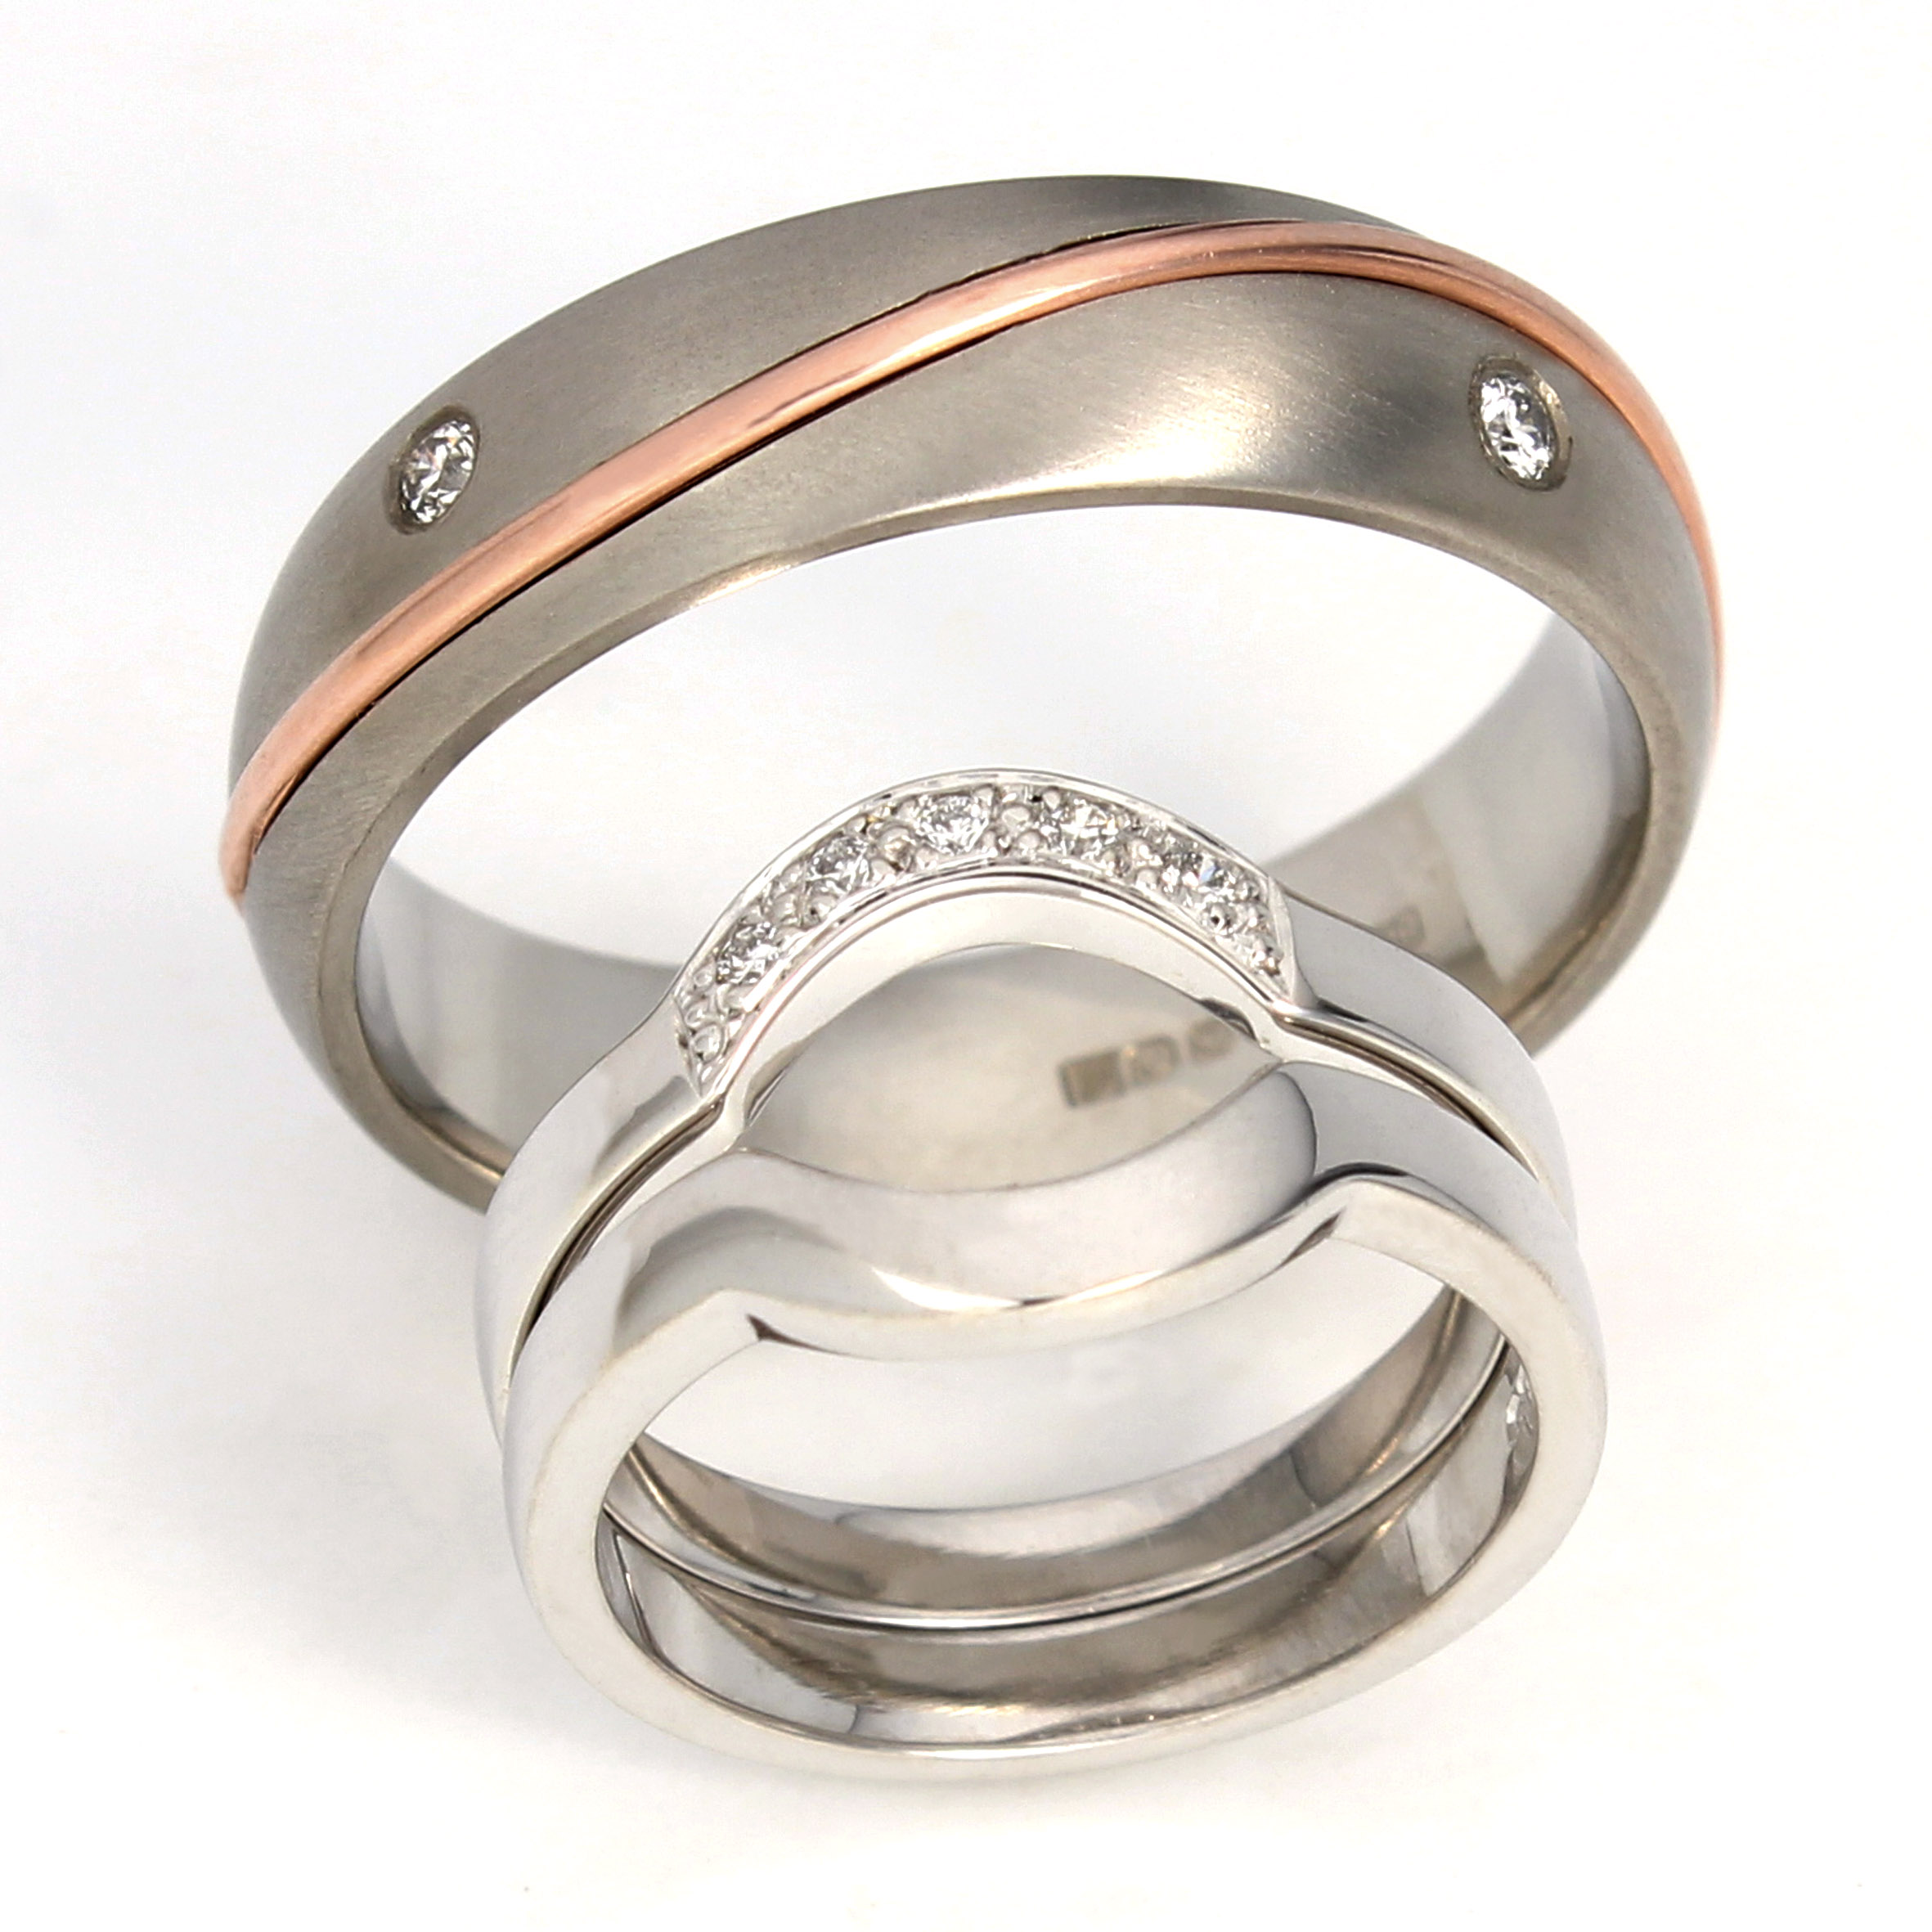 rub patterned setting round rings electra unique wedding engagement product diamond ring over dealer direct